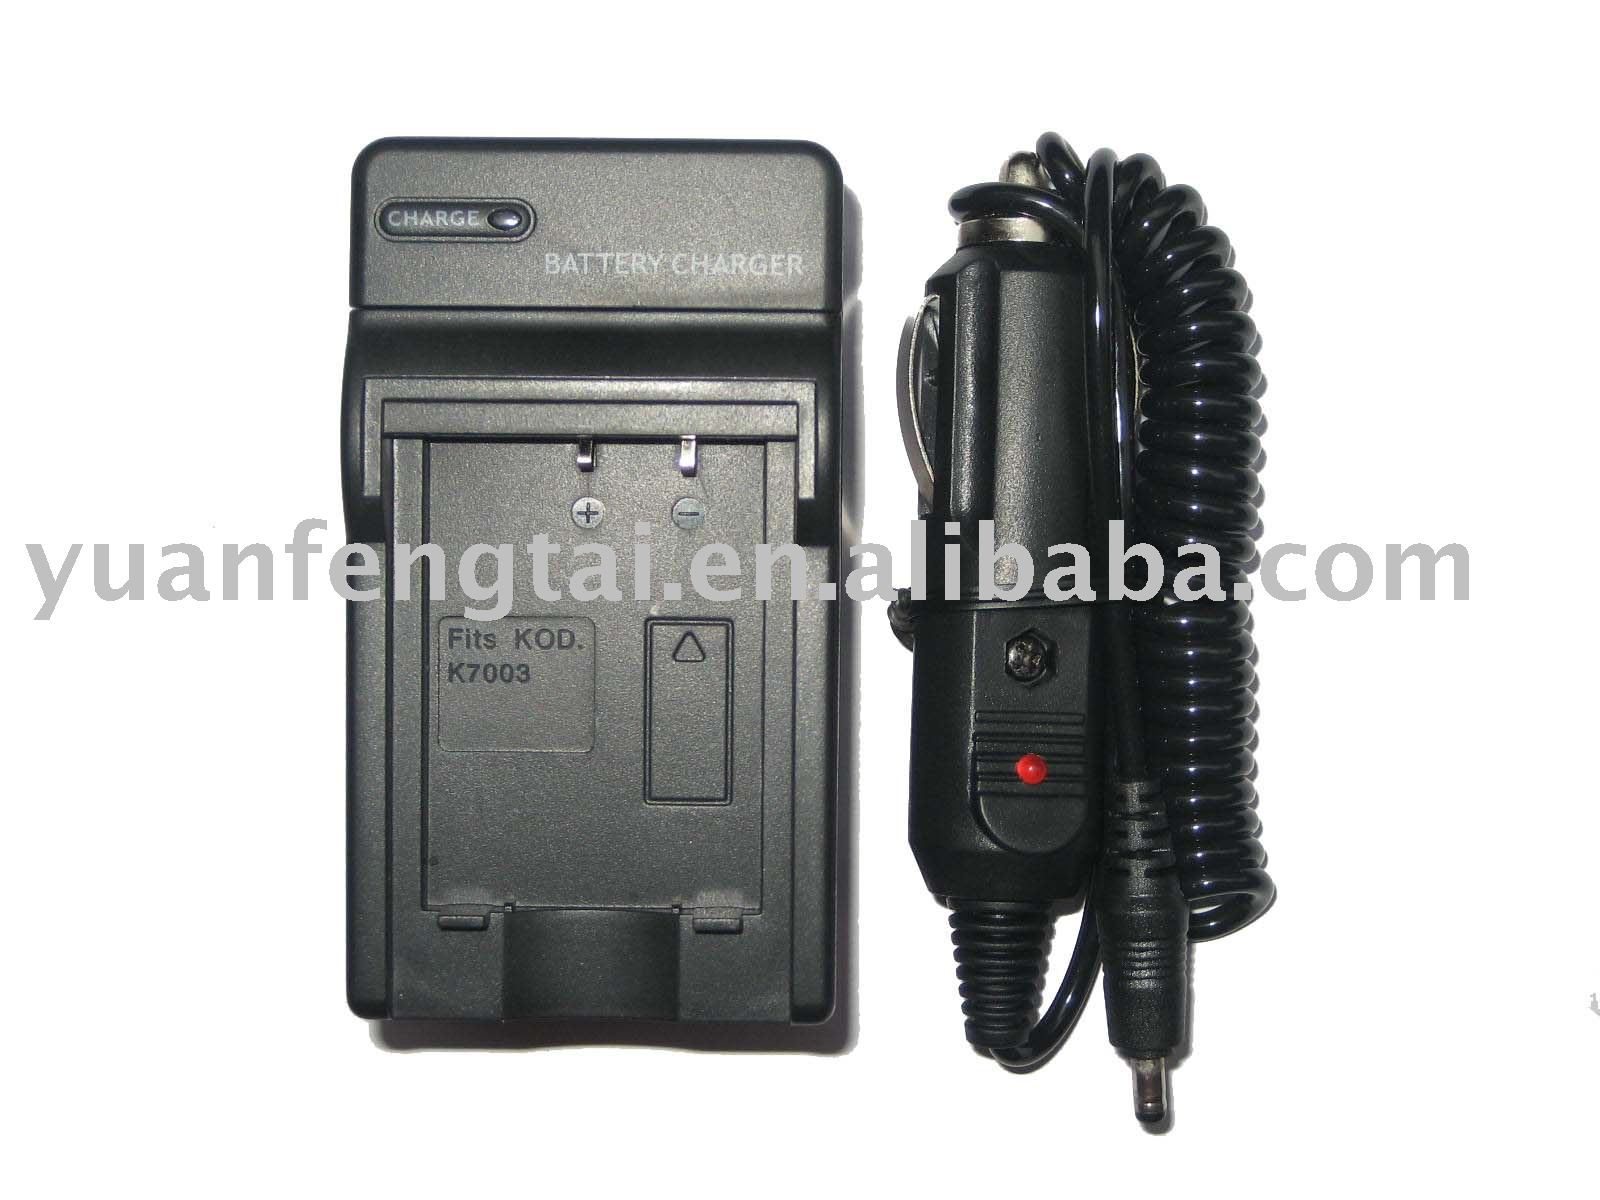 KLIC-5001 Battery Charger Digital Camera Battery Charger for Kodak KLIC-5001